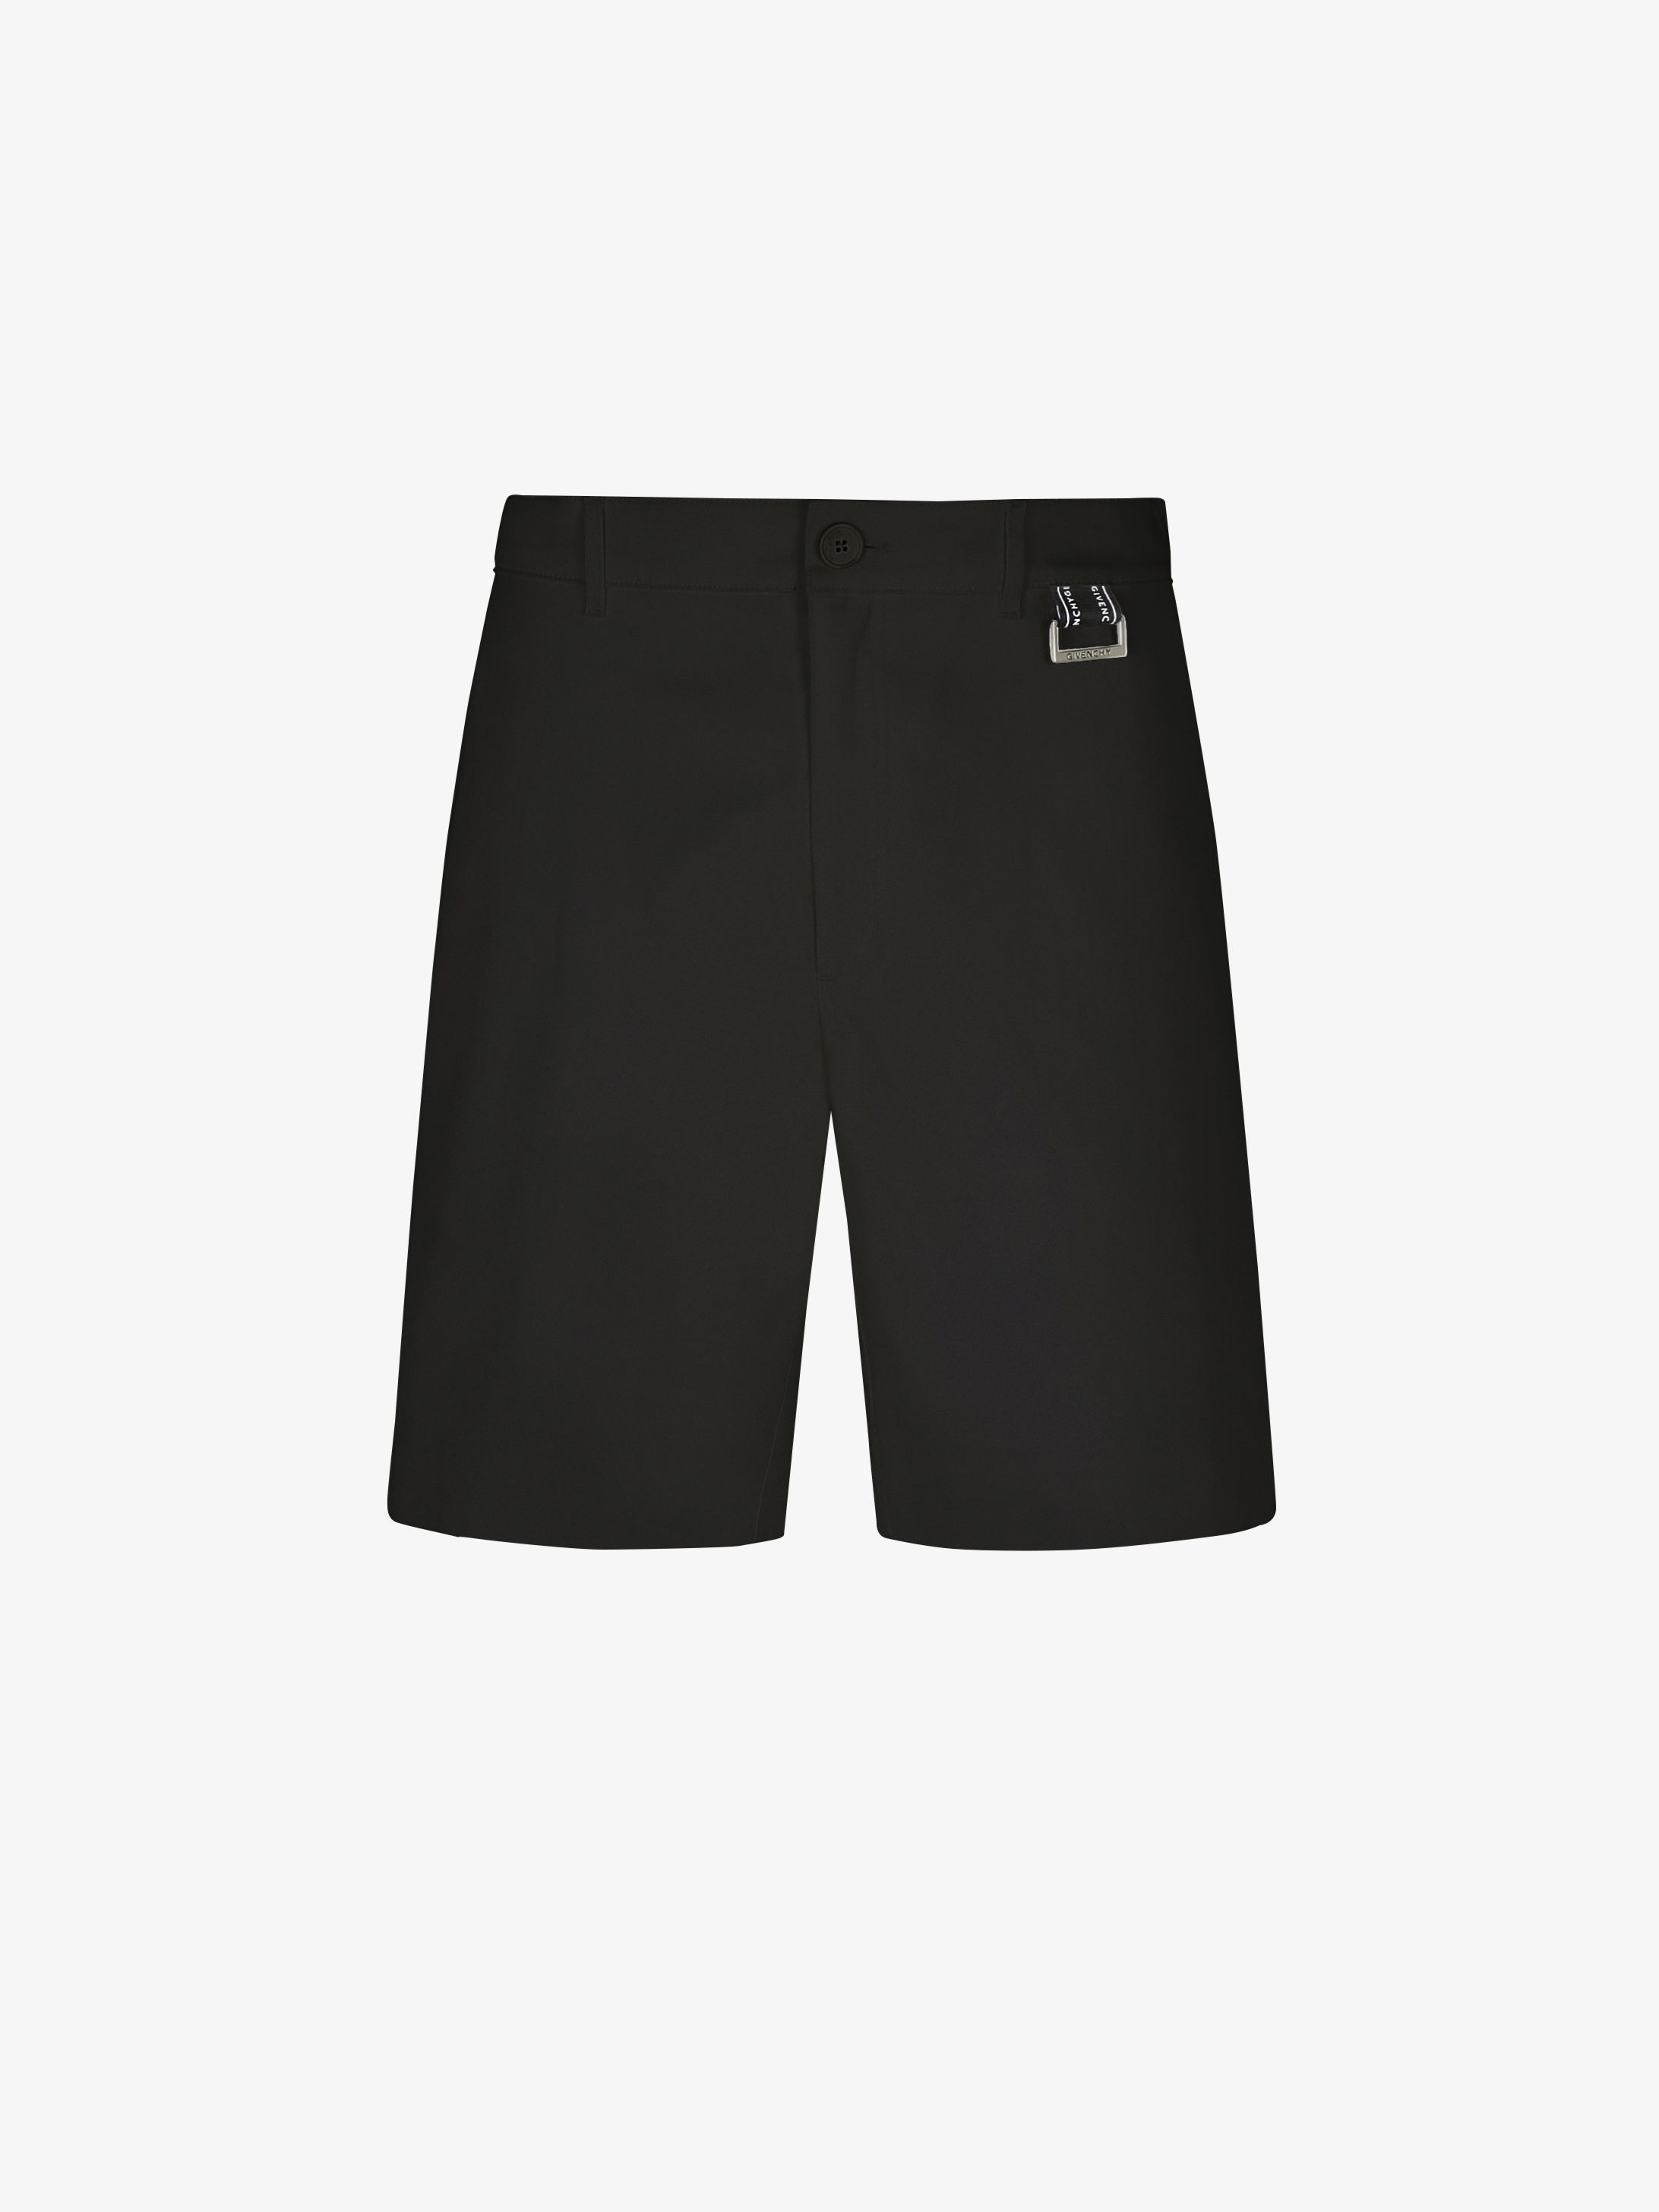 GIVENCHY short pants chino with buckle and band